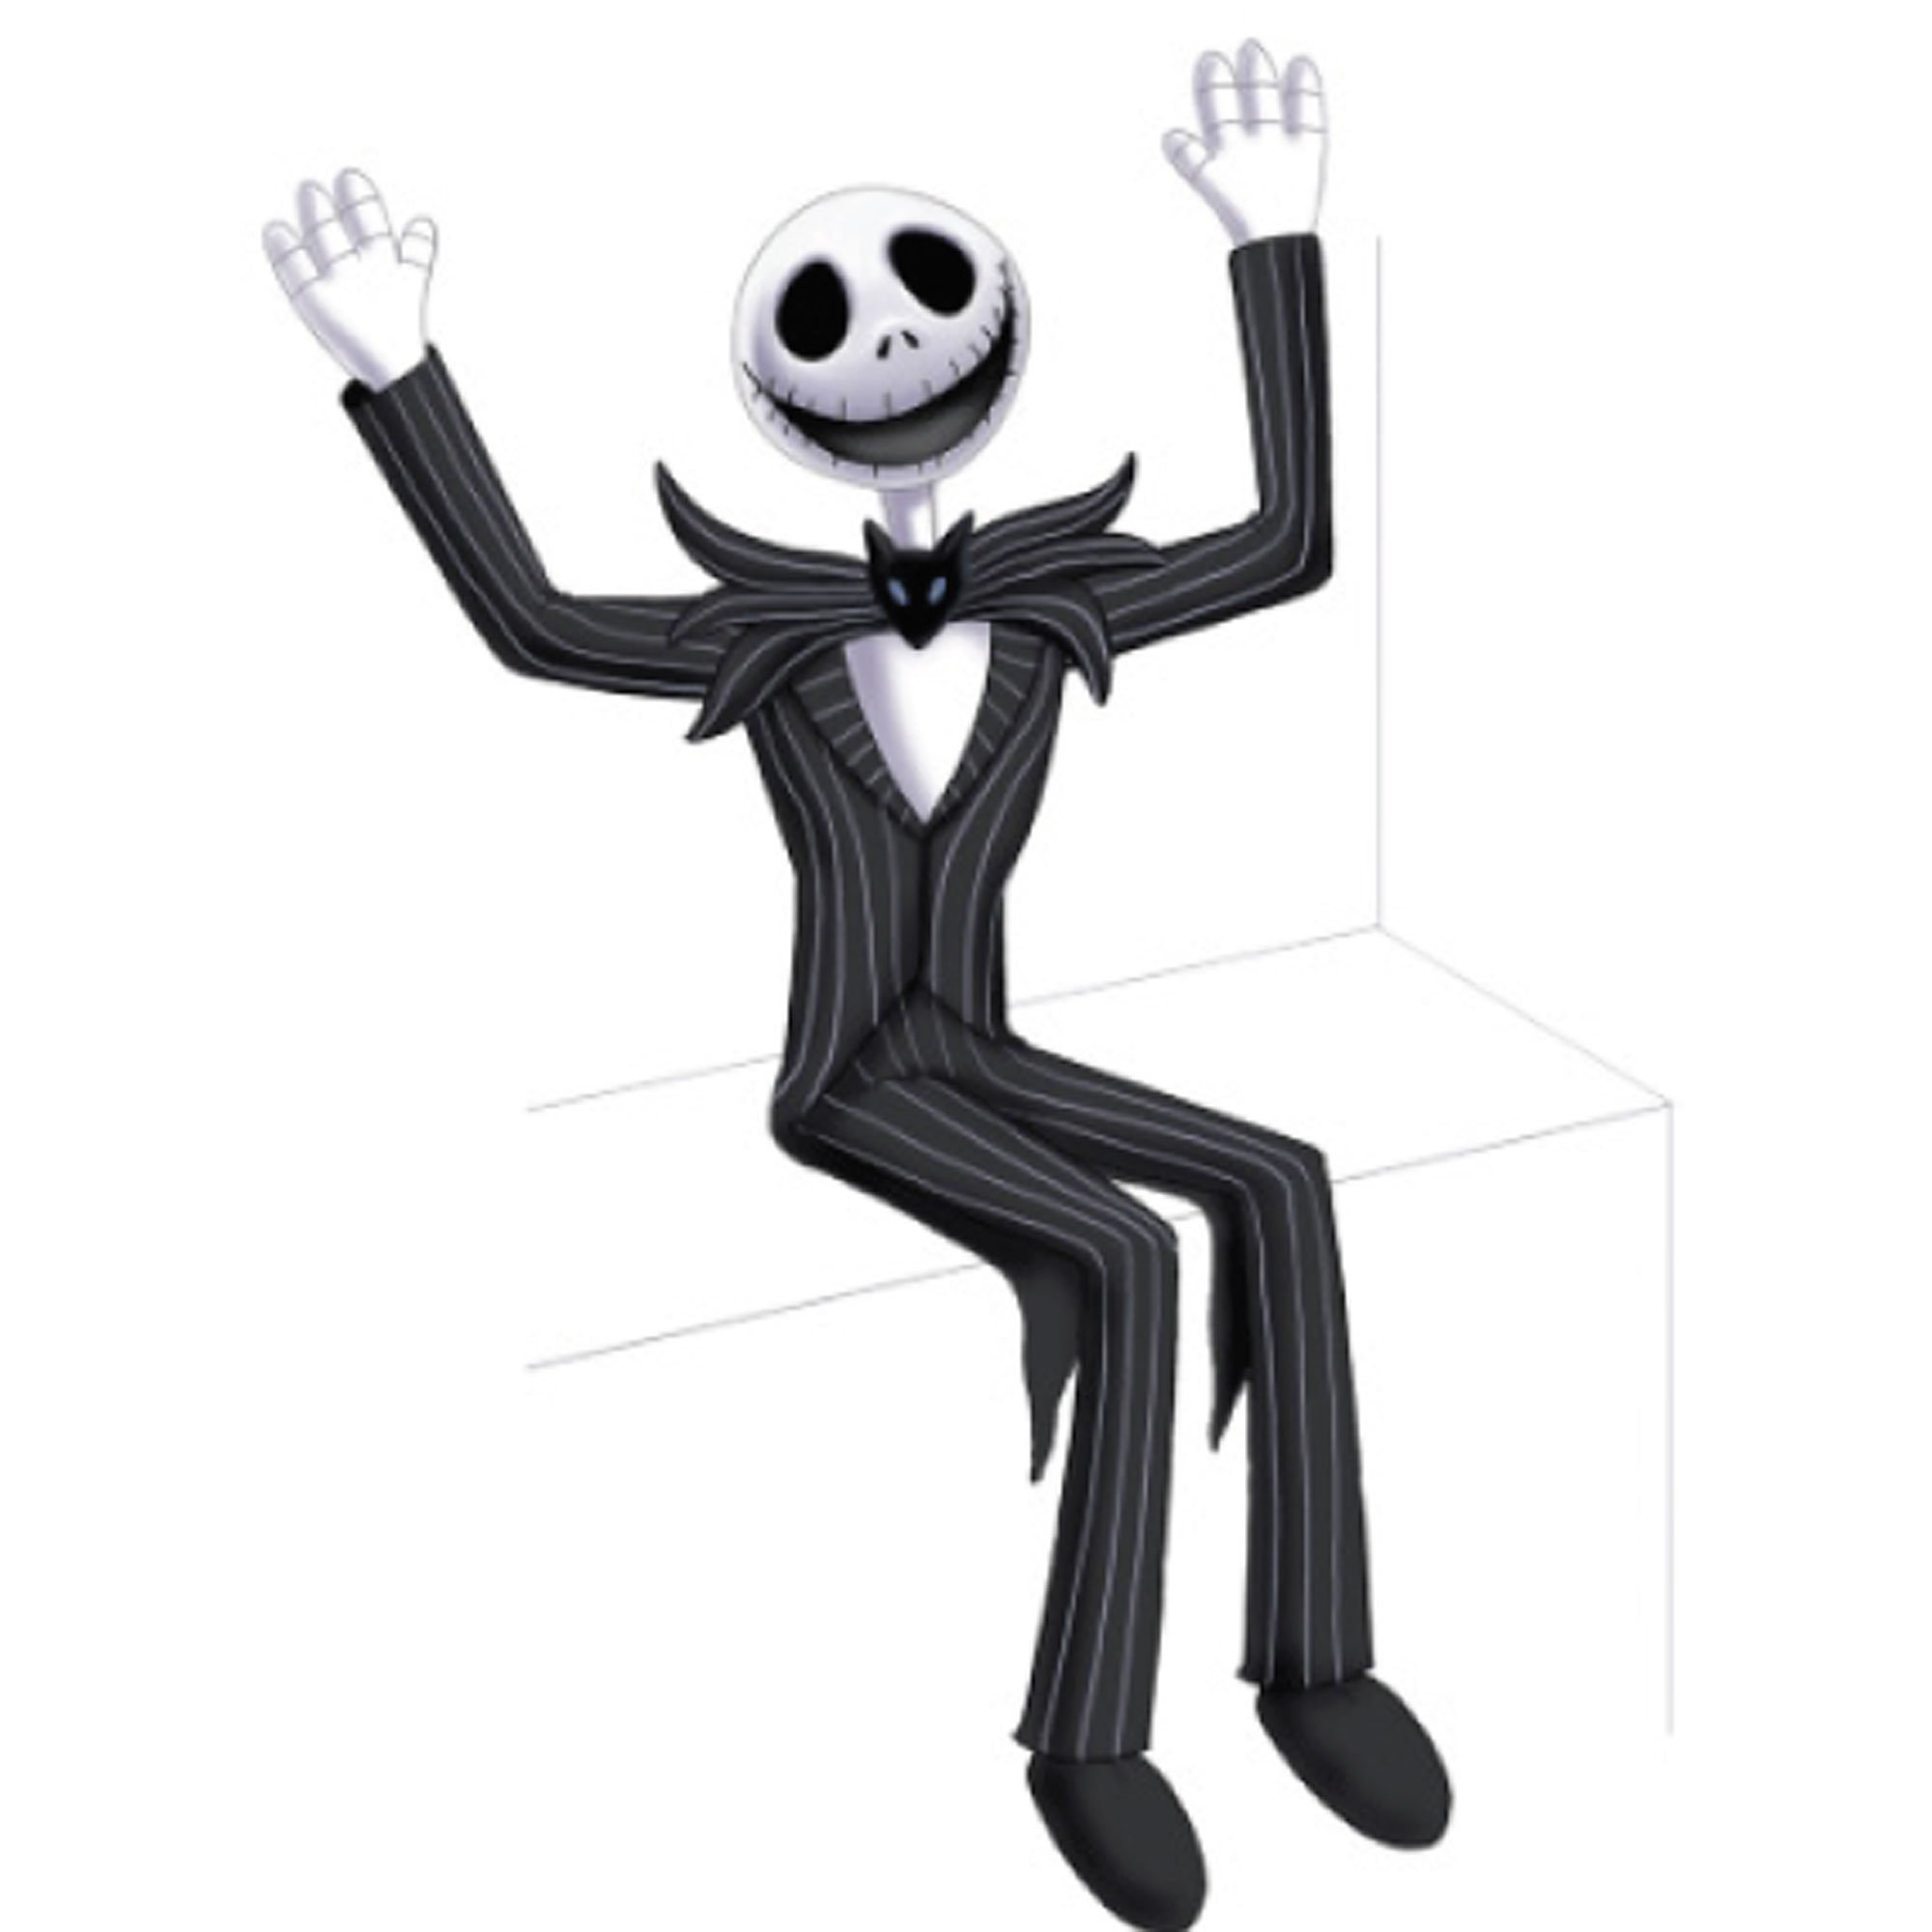 The Nightmare Before Christmas Jack Skellington Posable Sitting Prop 25cm